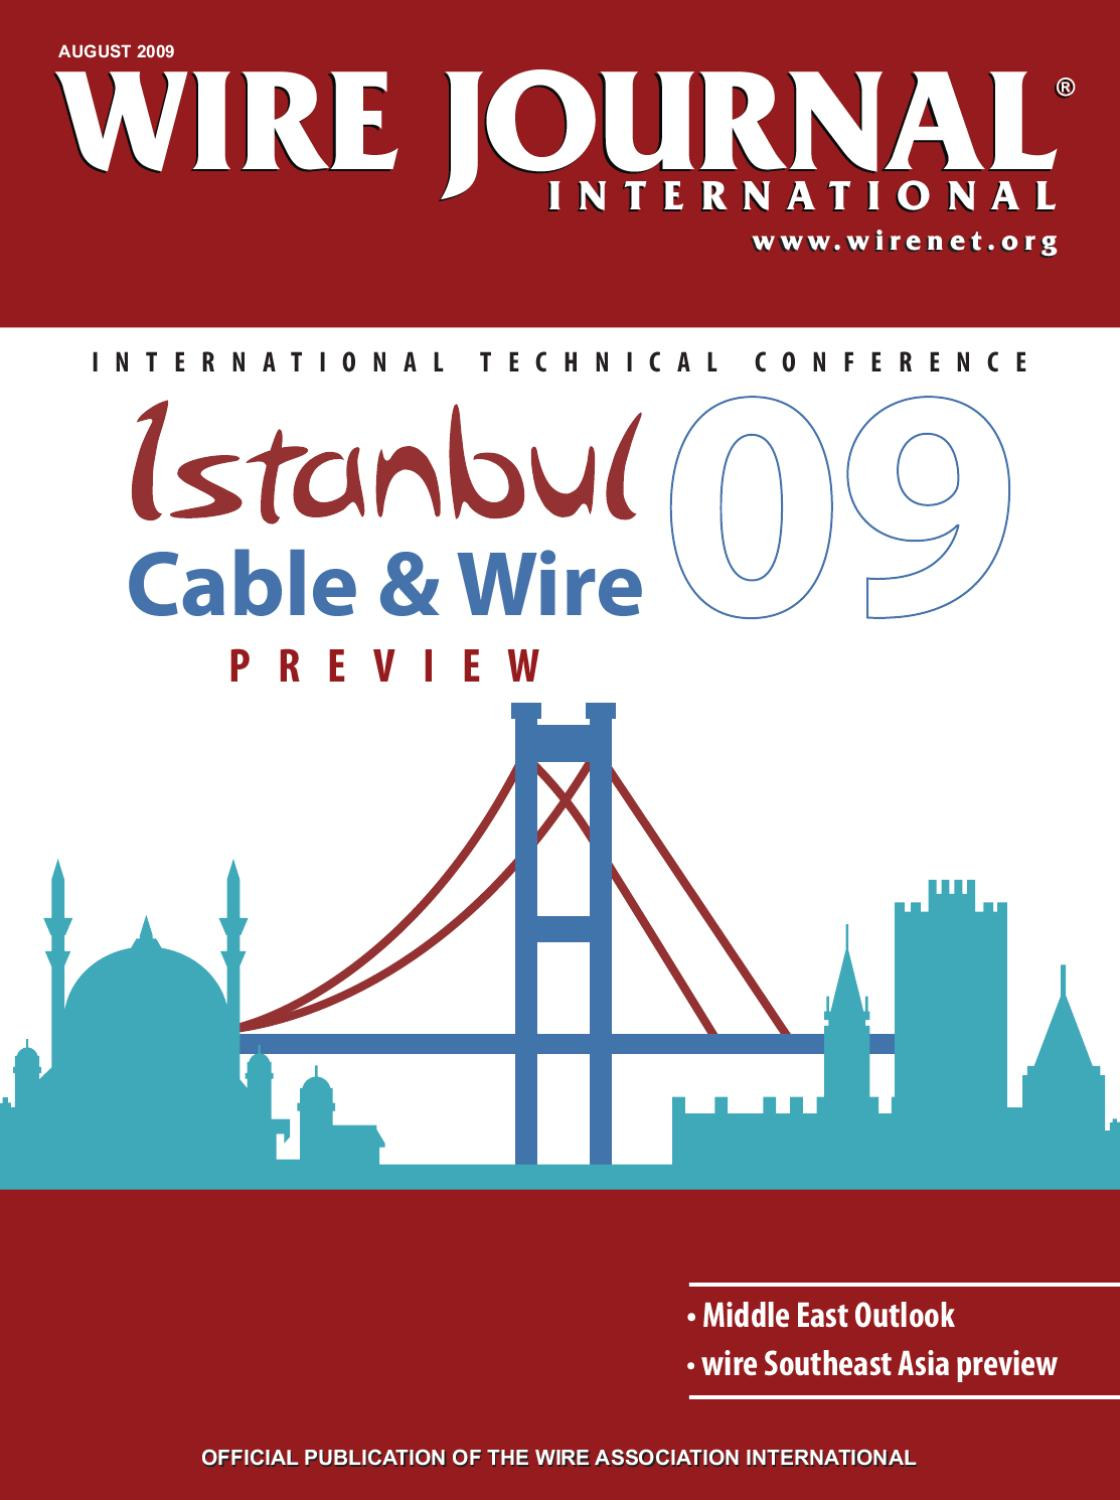 hight resolution of istanbul cable wire 2009 preview by wire journal international inc issuu